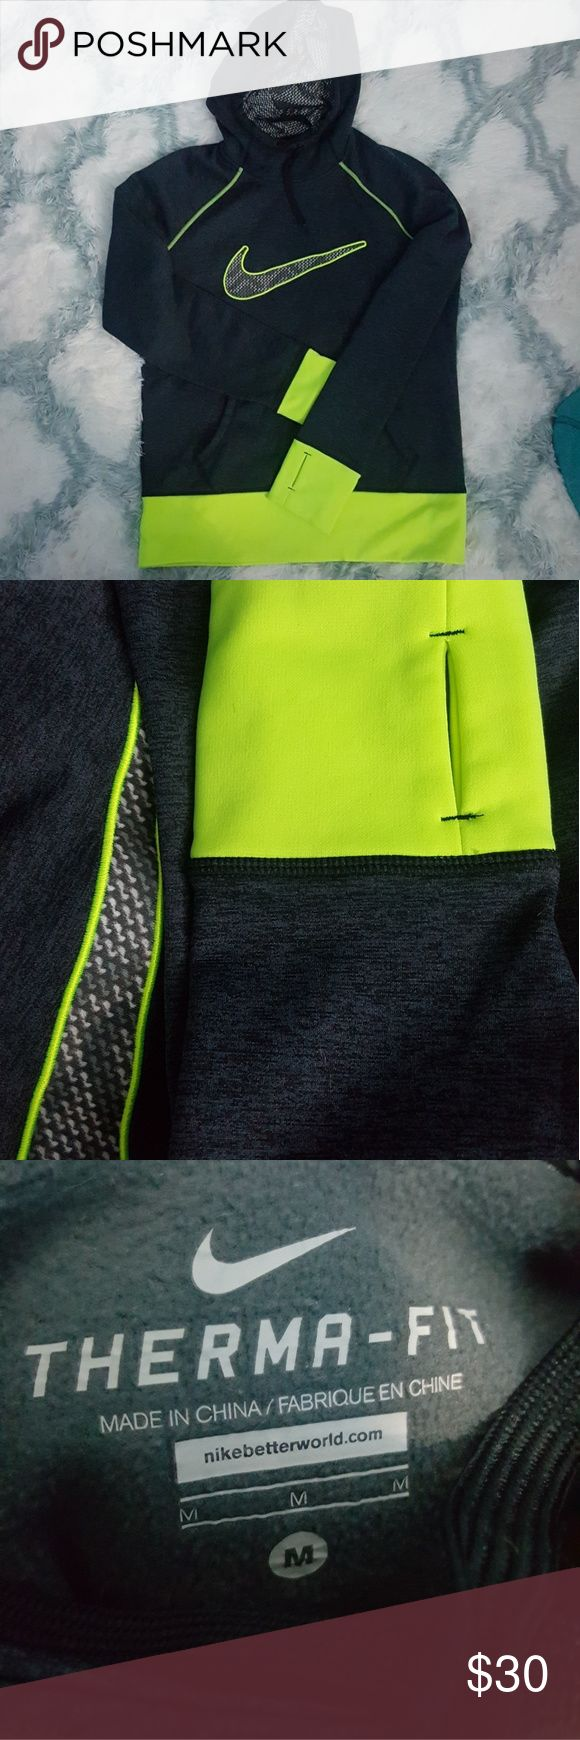 Nike Therma-Fit Hoodie Sweatshirt Active Medium Nike Therma-Fit Hoodie Sweatshirt  Size Medium (fits like Womens) Thumbholes Drawstring Hoodie charcoal marble like print with neon highlighter yellow edges/trim Like-New Condition Nike Tops Sweatshirts & Hoodies